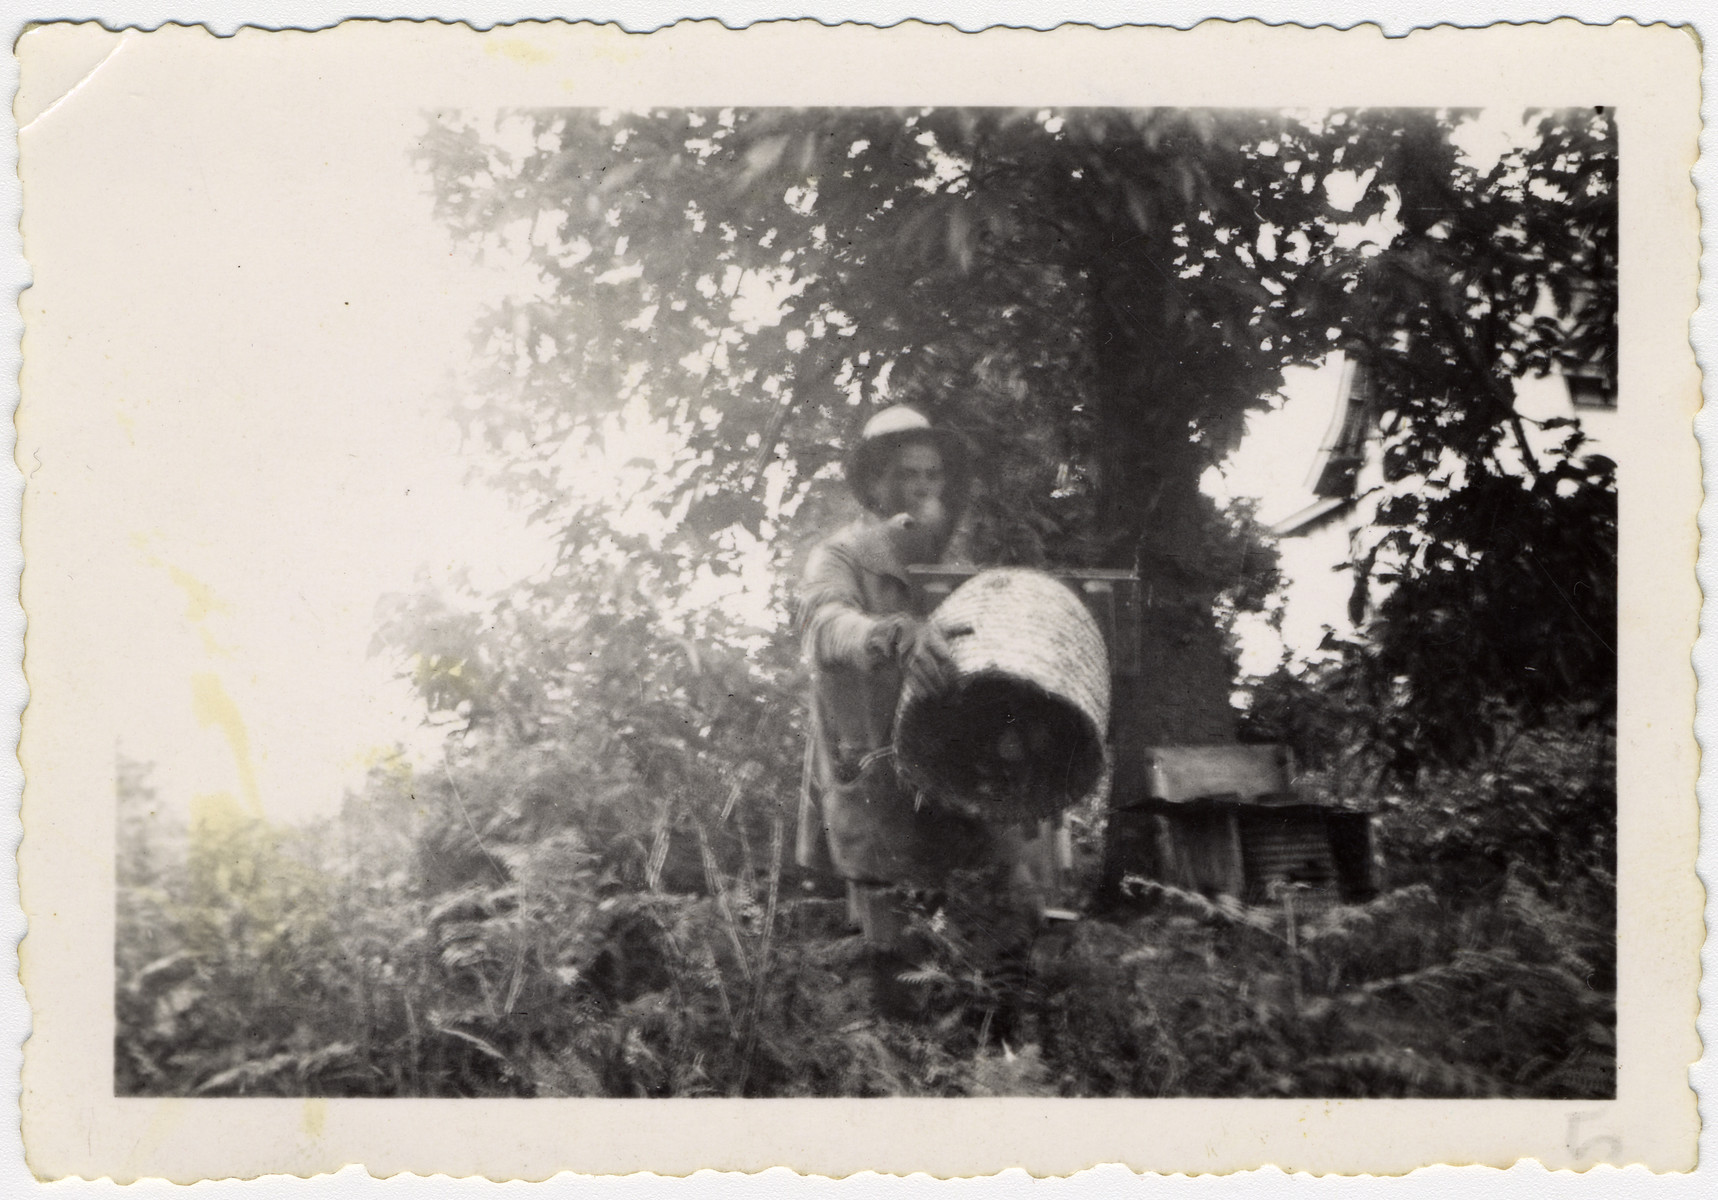 Izhak tends the beehives in the La Ramee agricultural school.  The school was established after Jewish students were expelled from general schools  and directed by Haroun Tazieff.